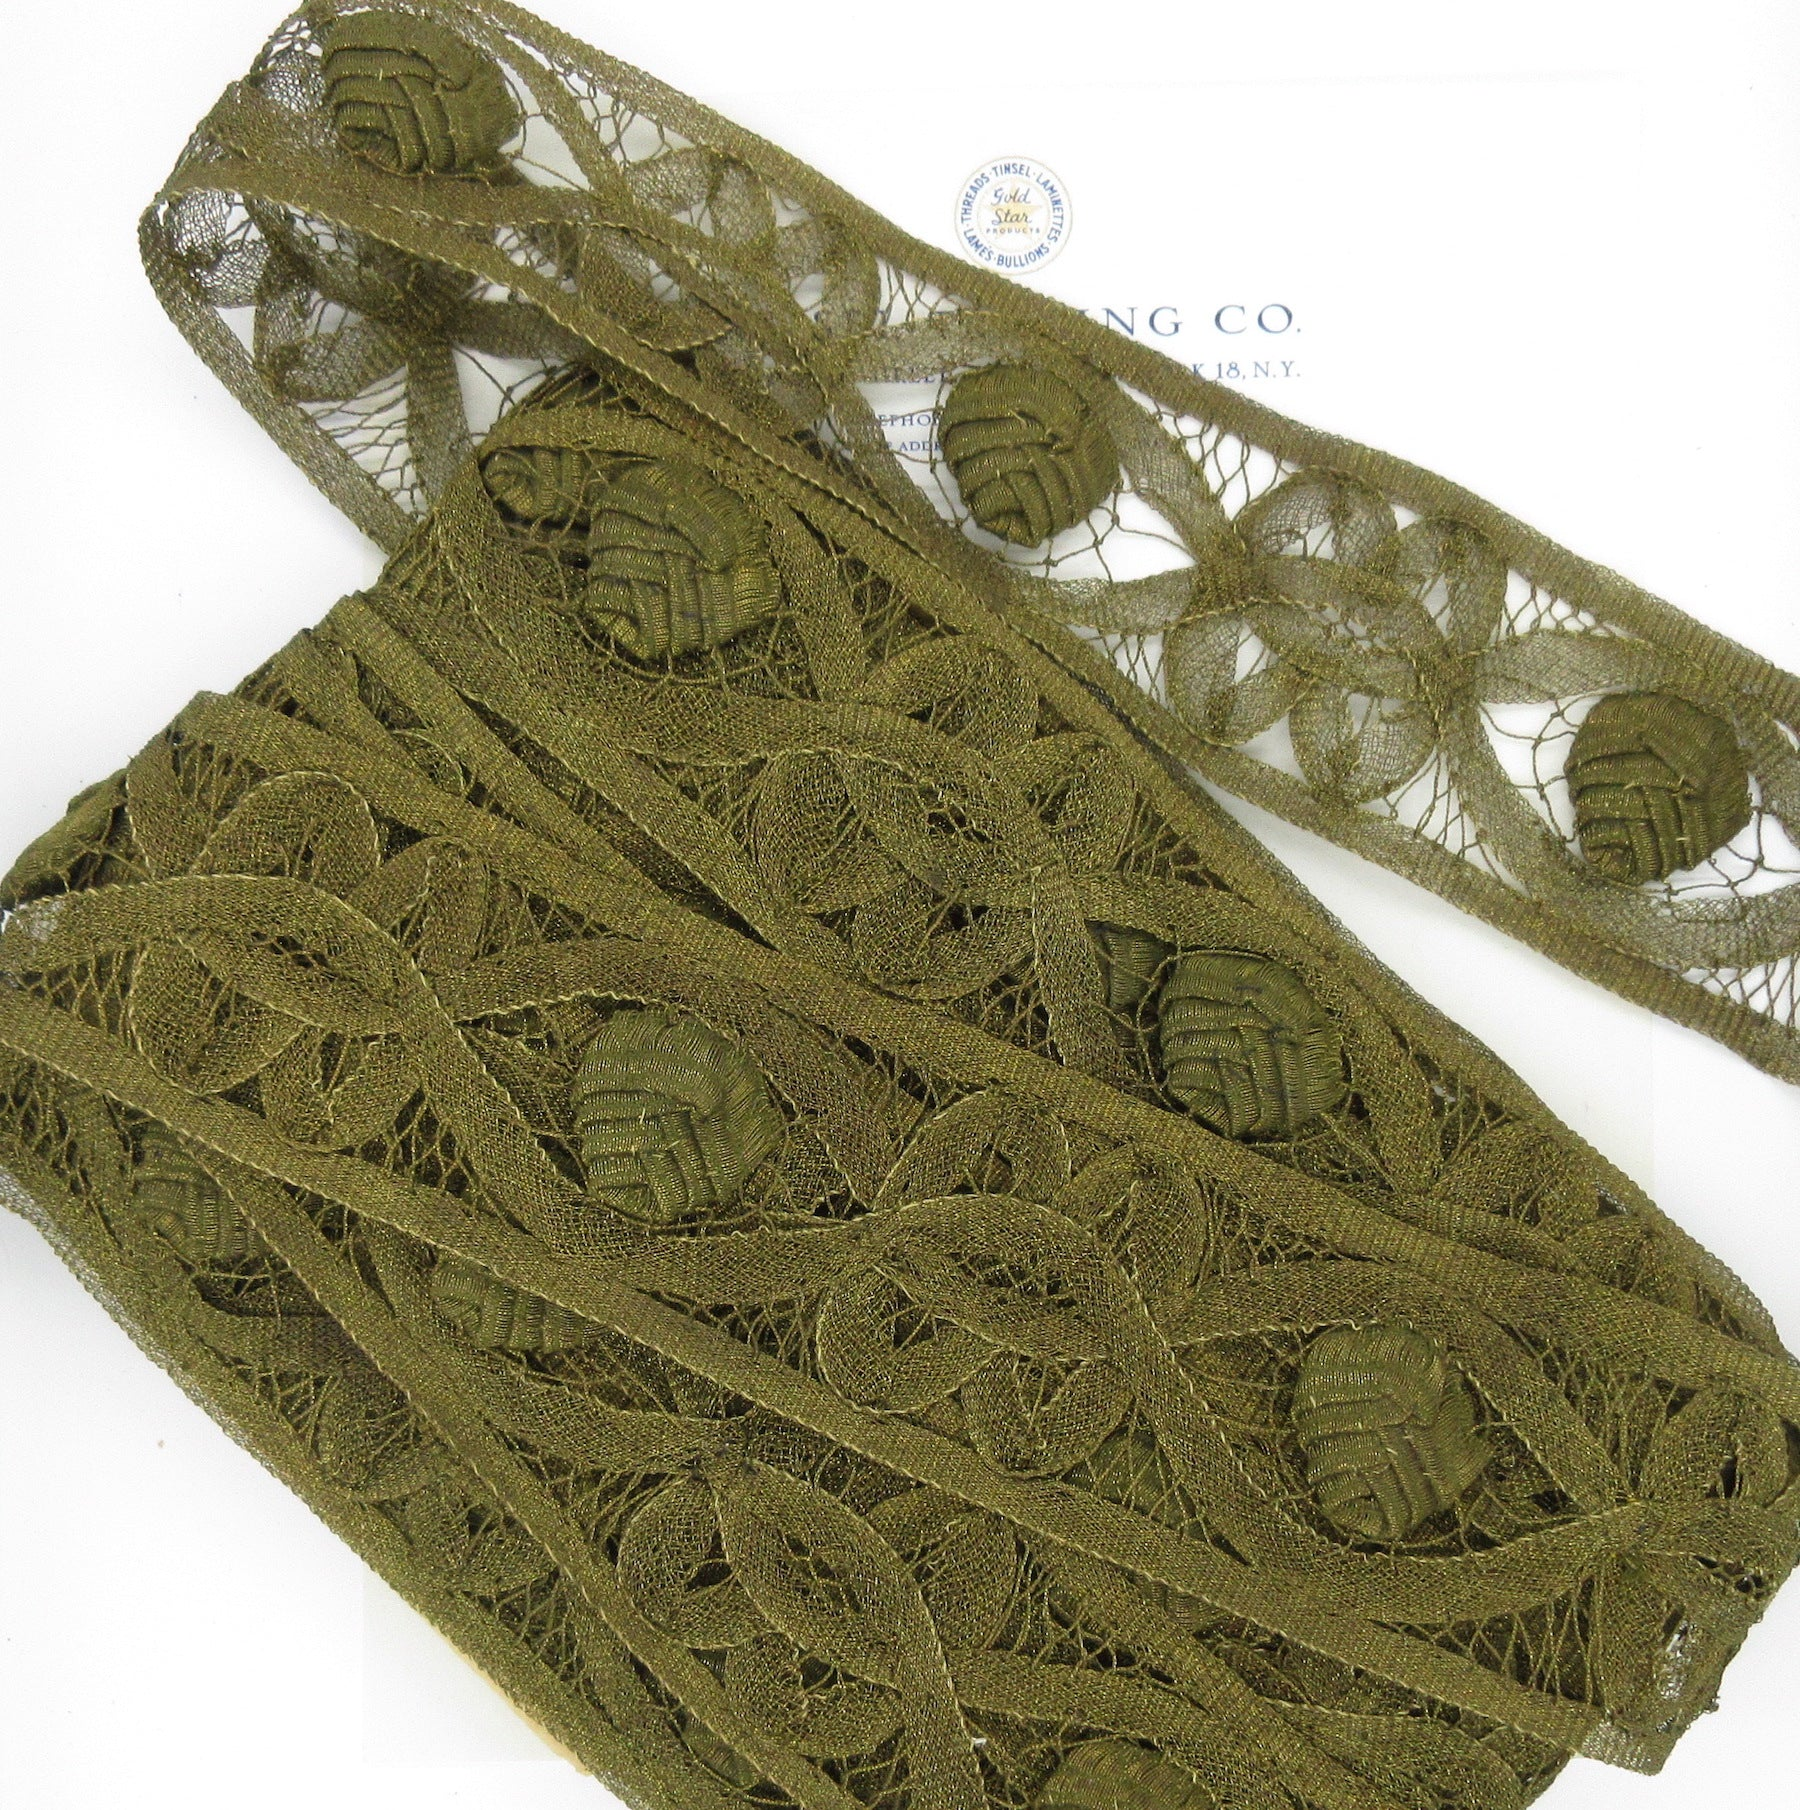 Antique Gold Lace Trim